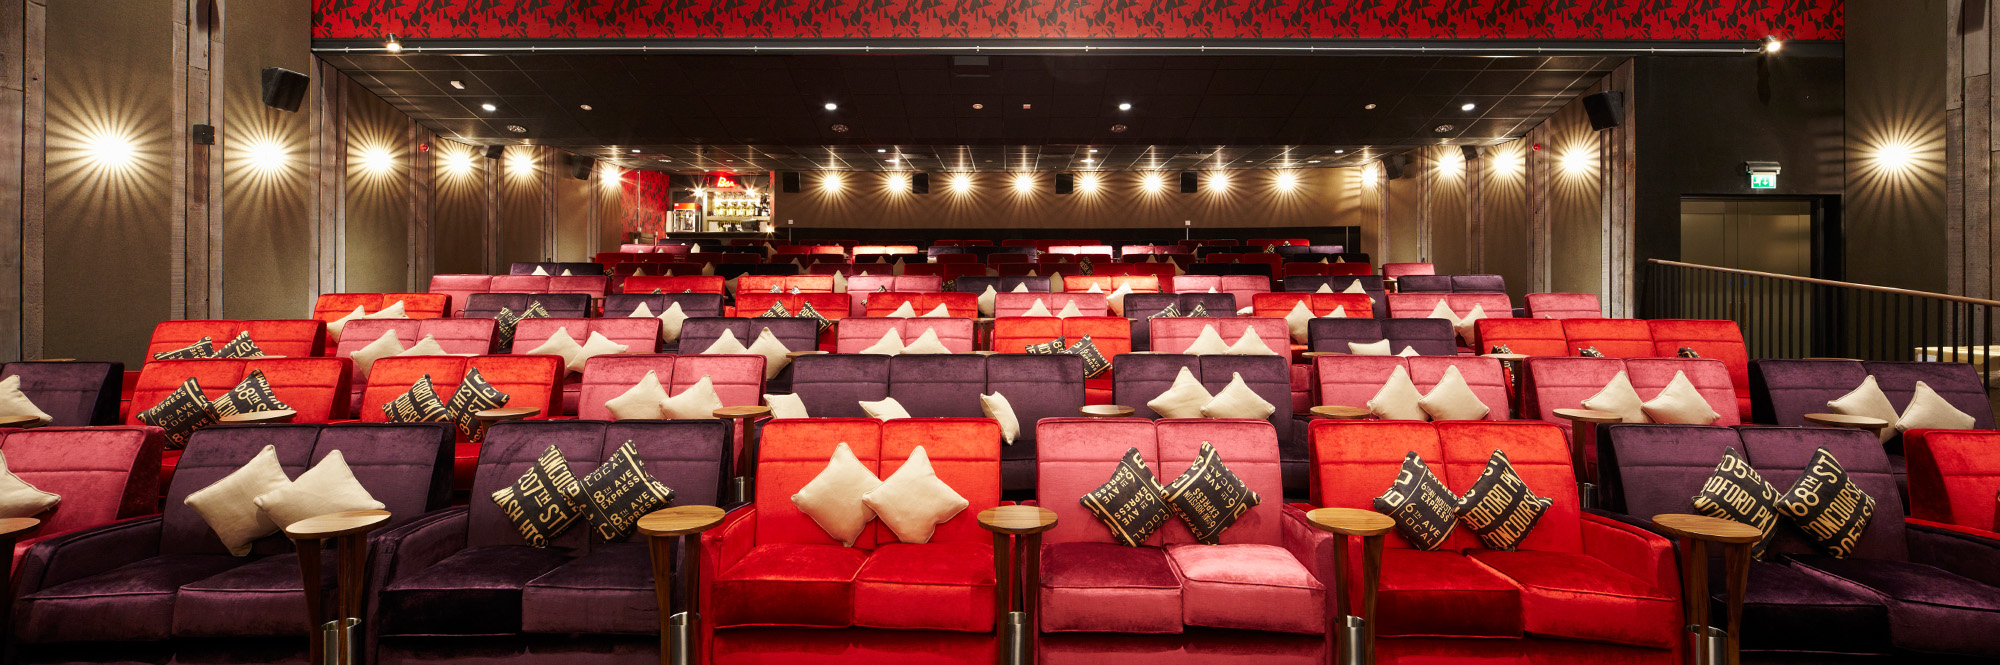 Top 5 Cinemas In London Come2england